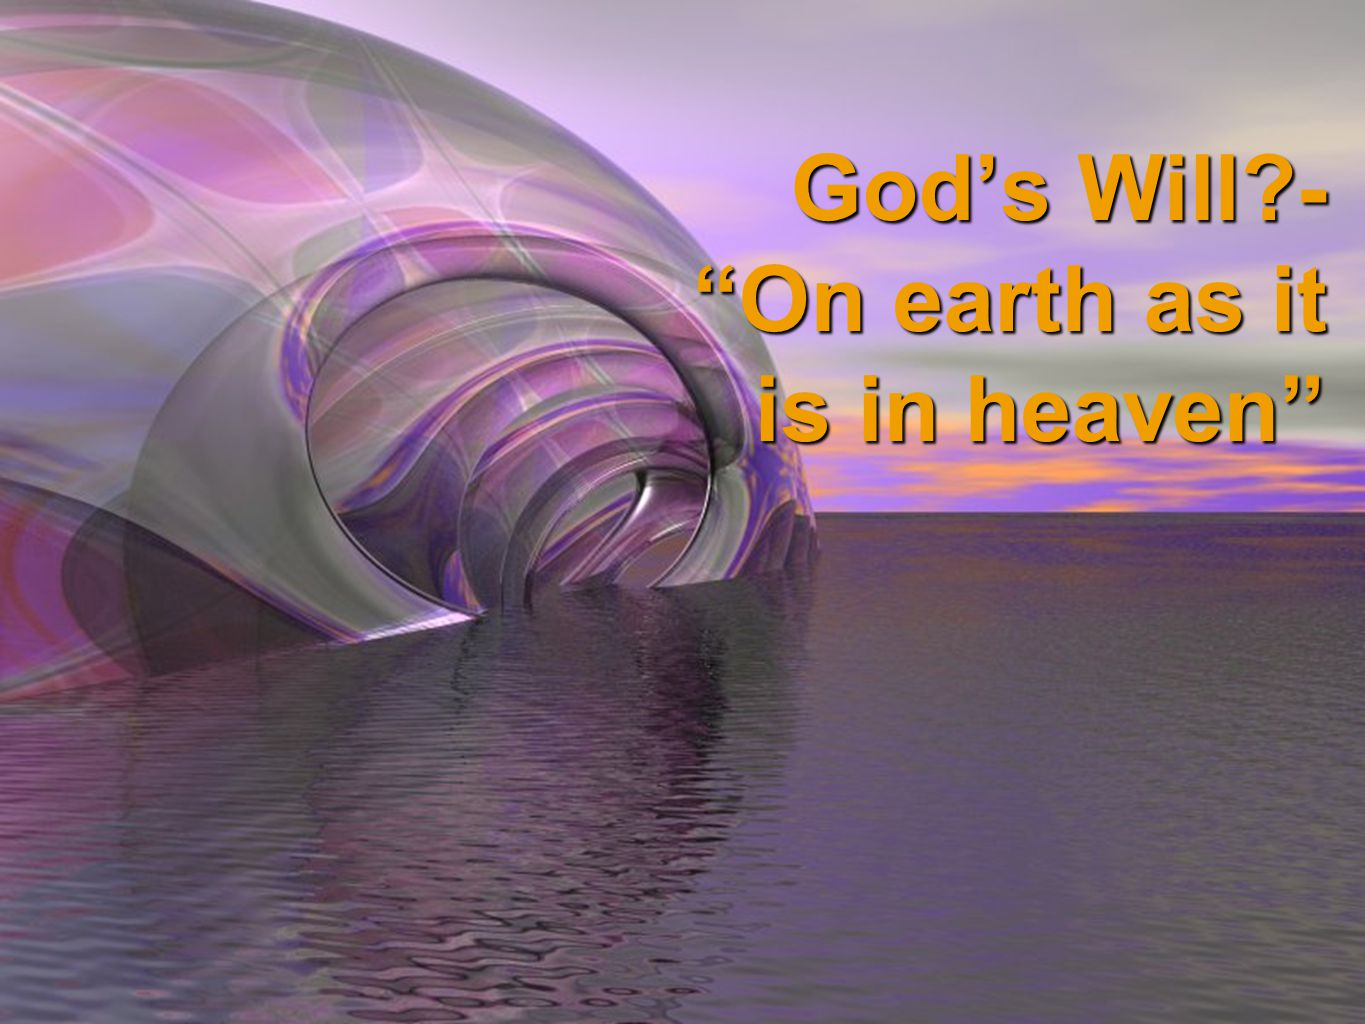 God's Will - On earth as it is in heaven